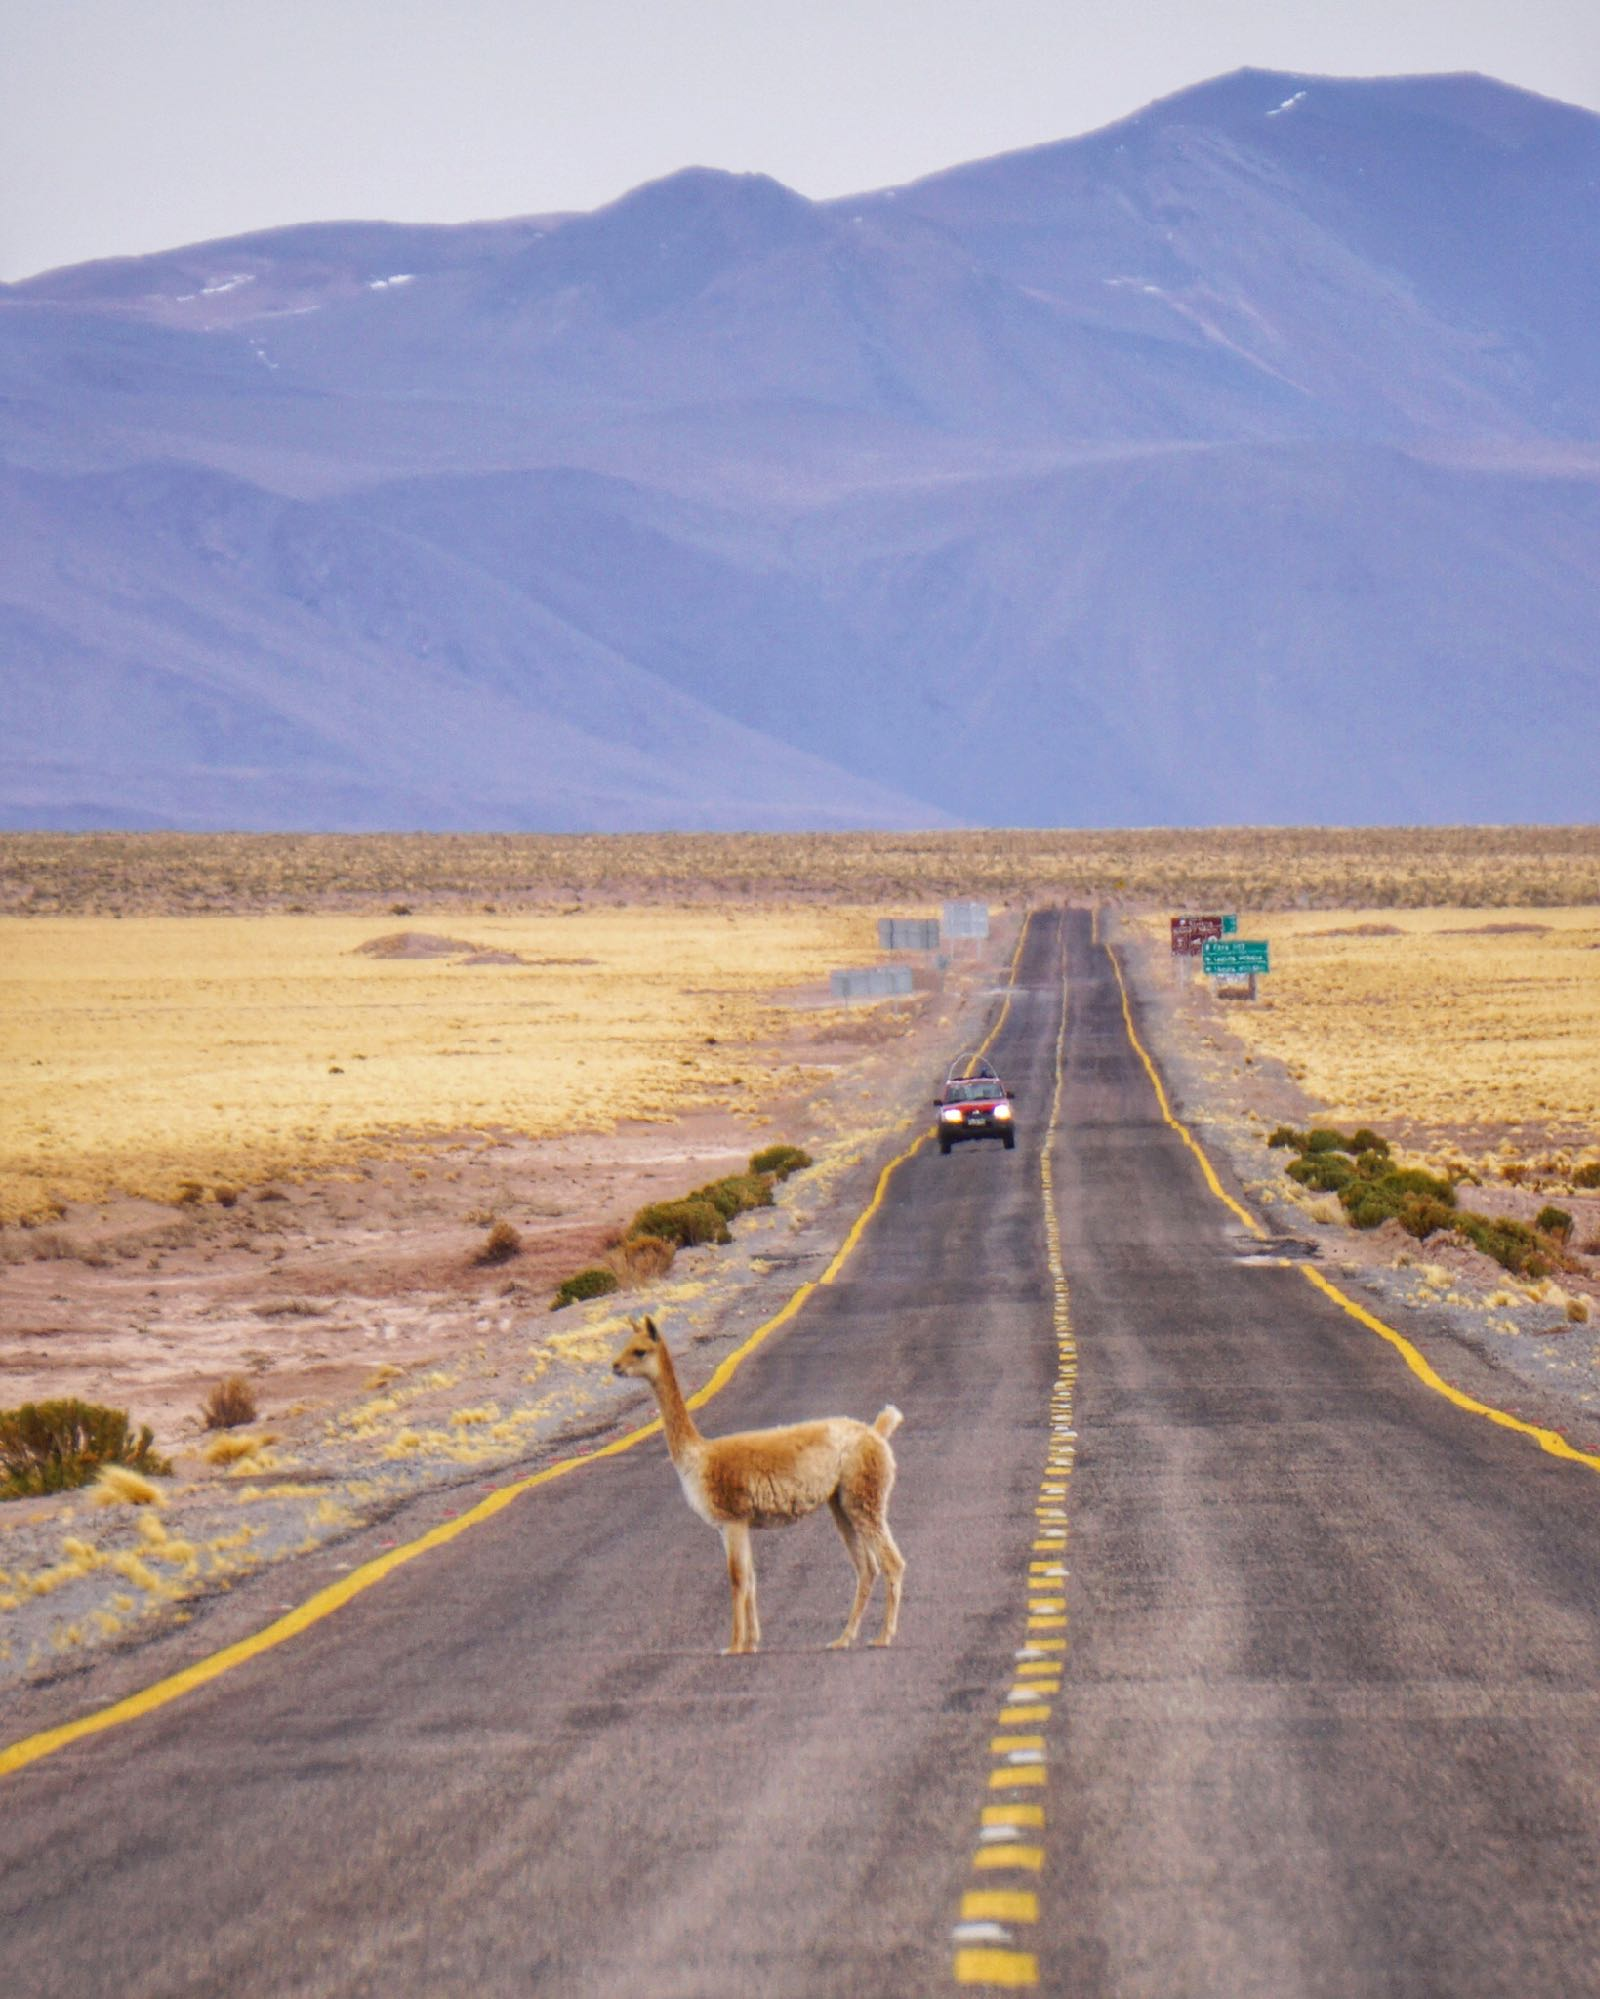 san pedro de atacama vicuna on the road